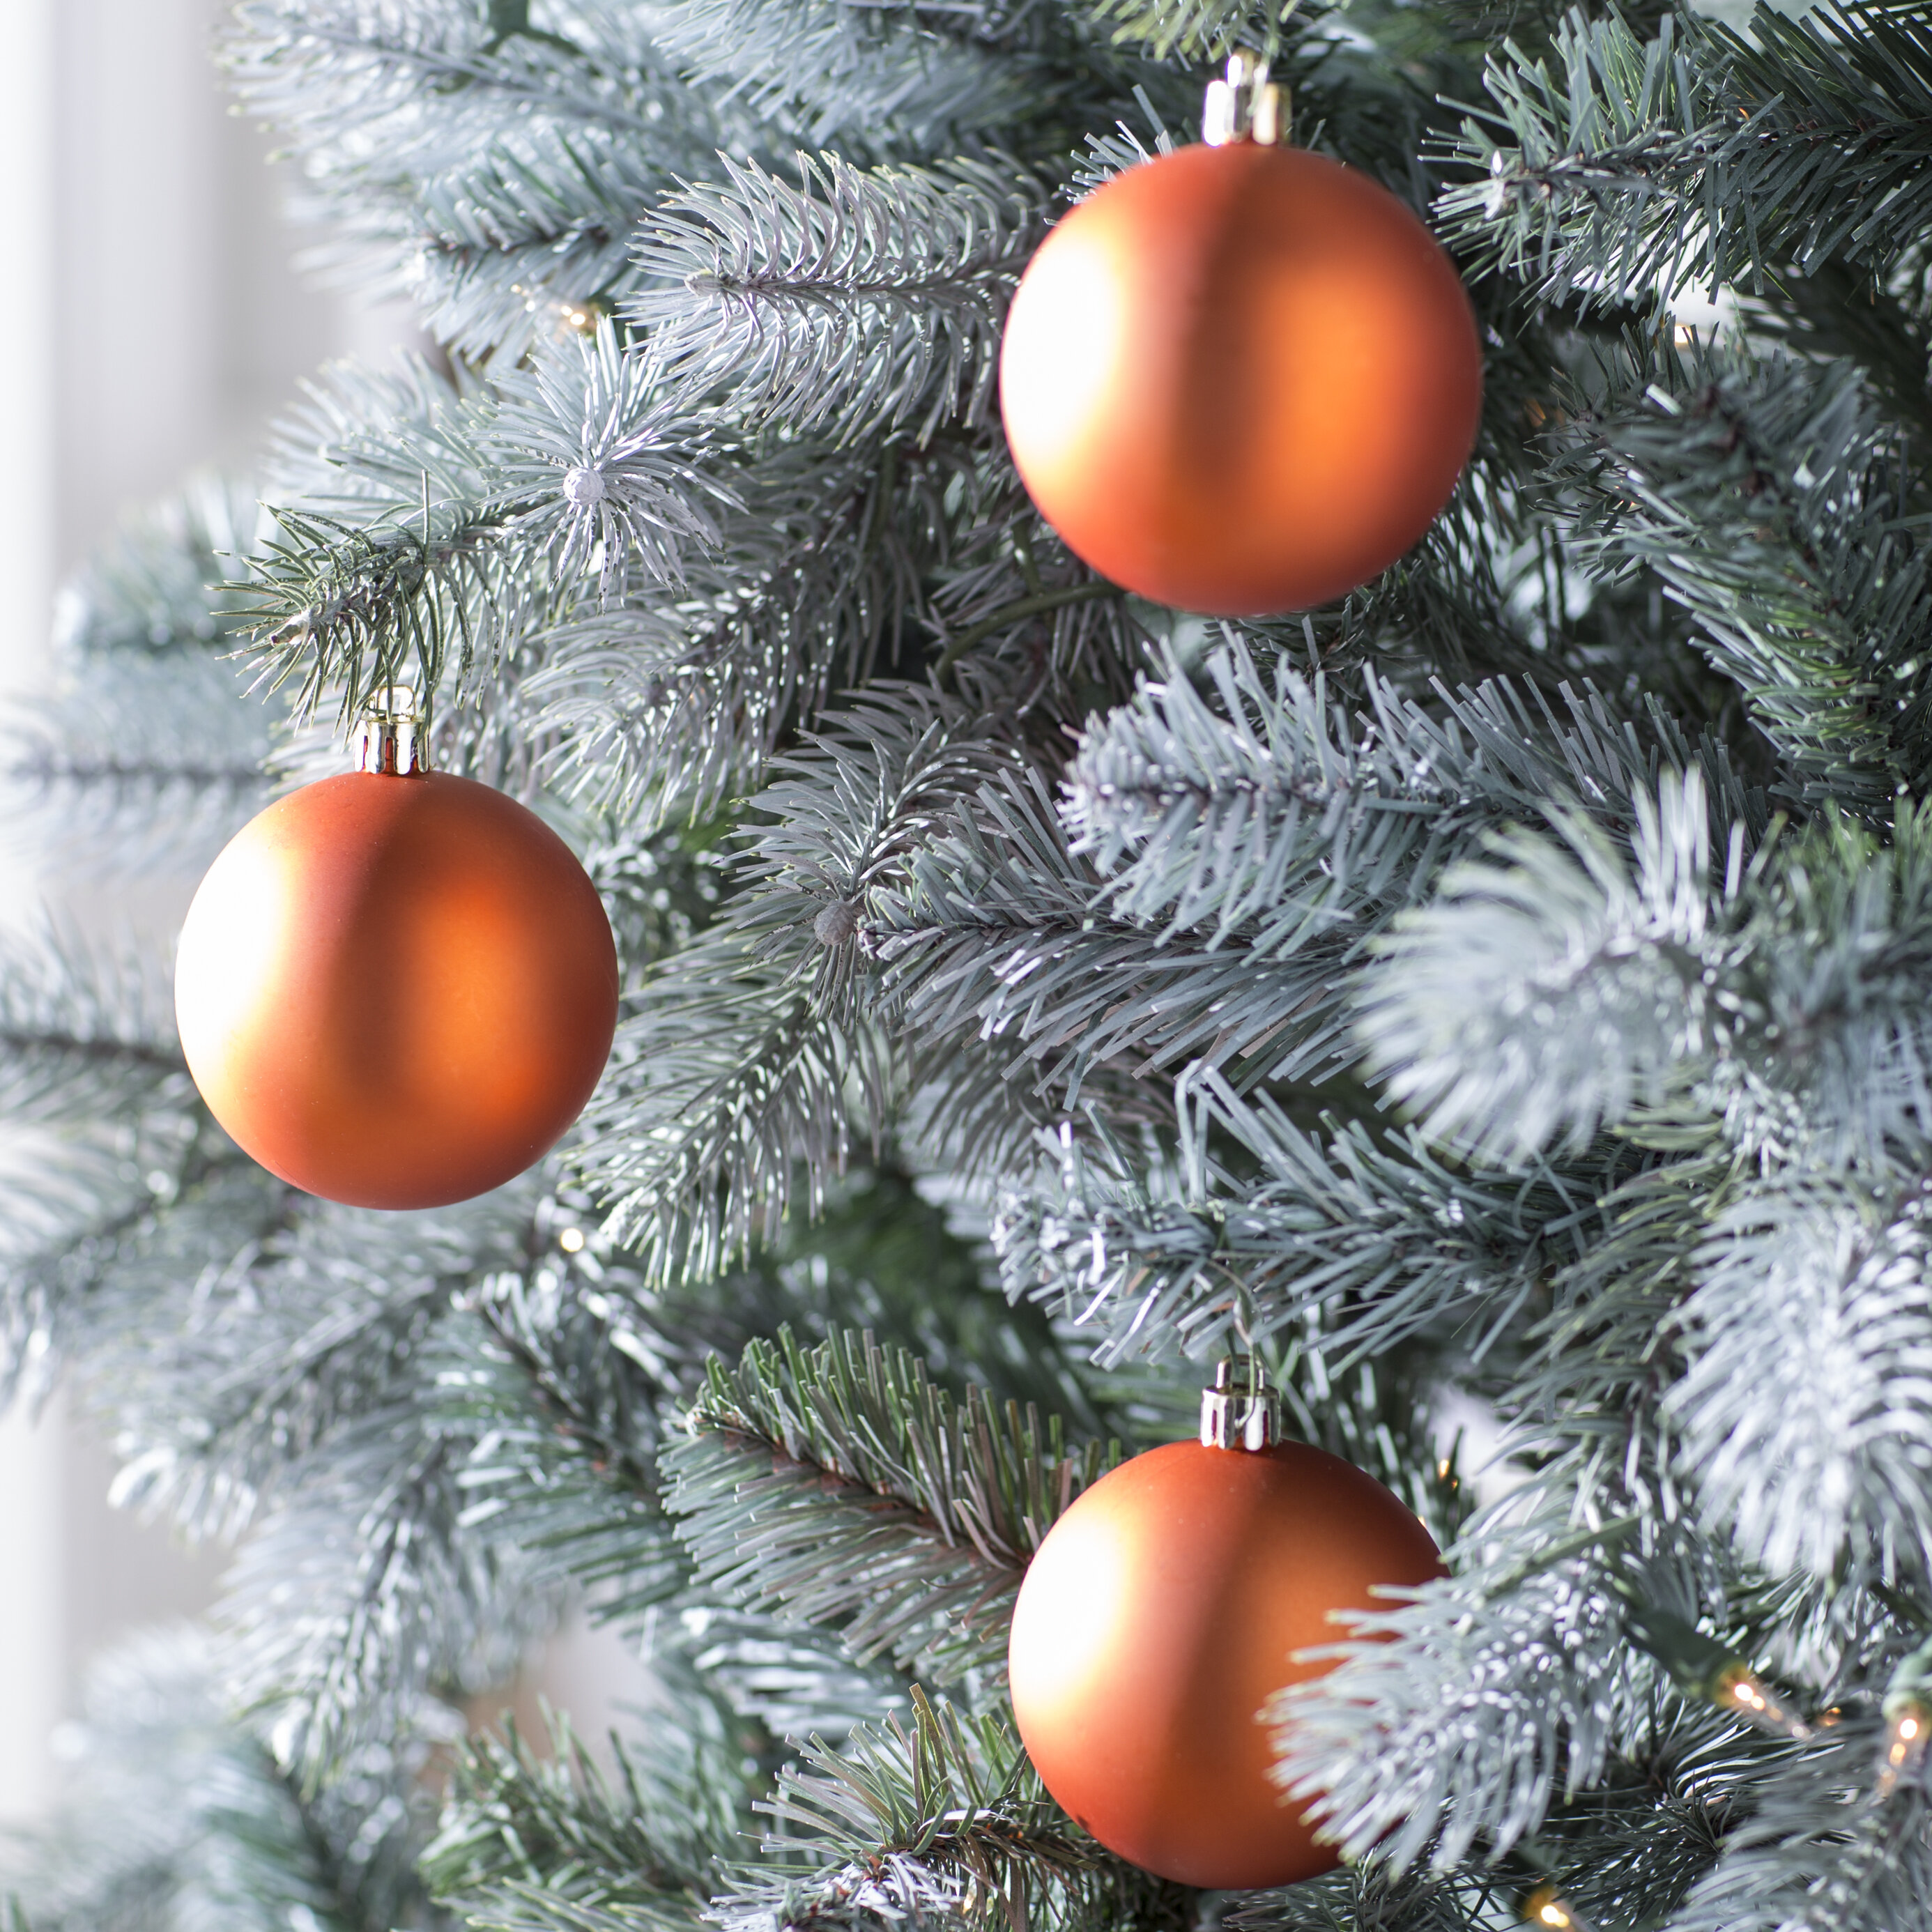 Wayfair Orange Christmas Ornaments You Ll Love In 2021